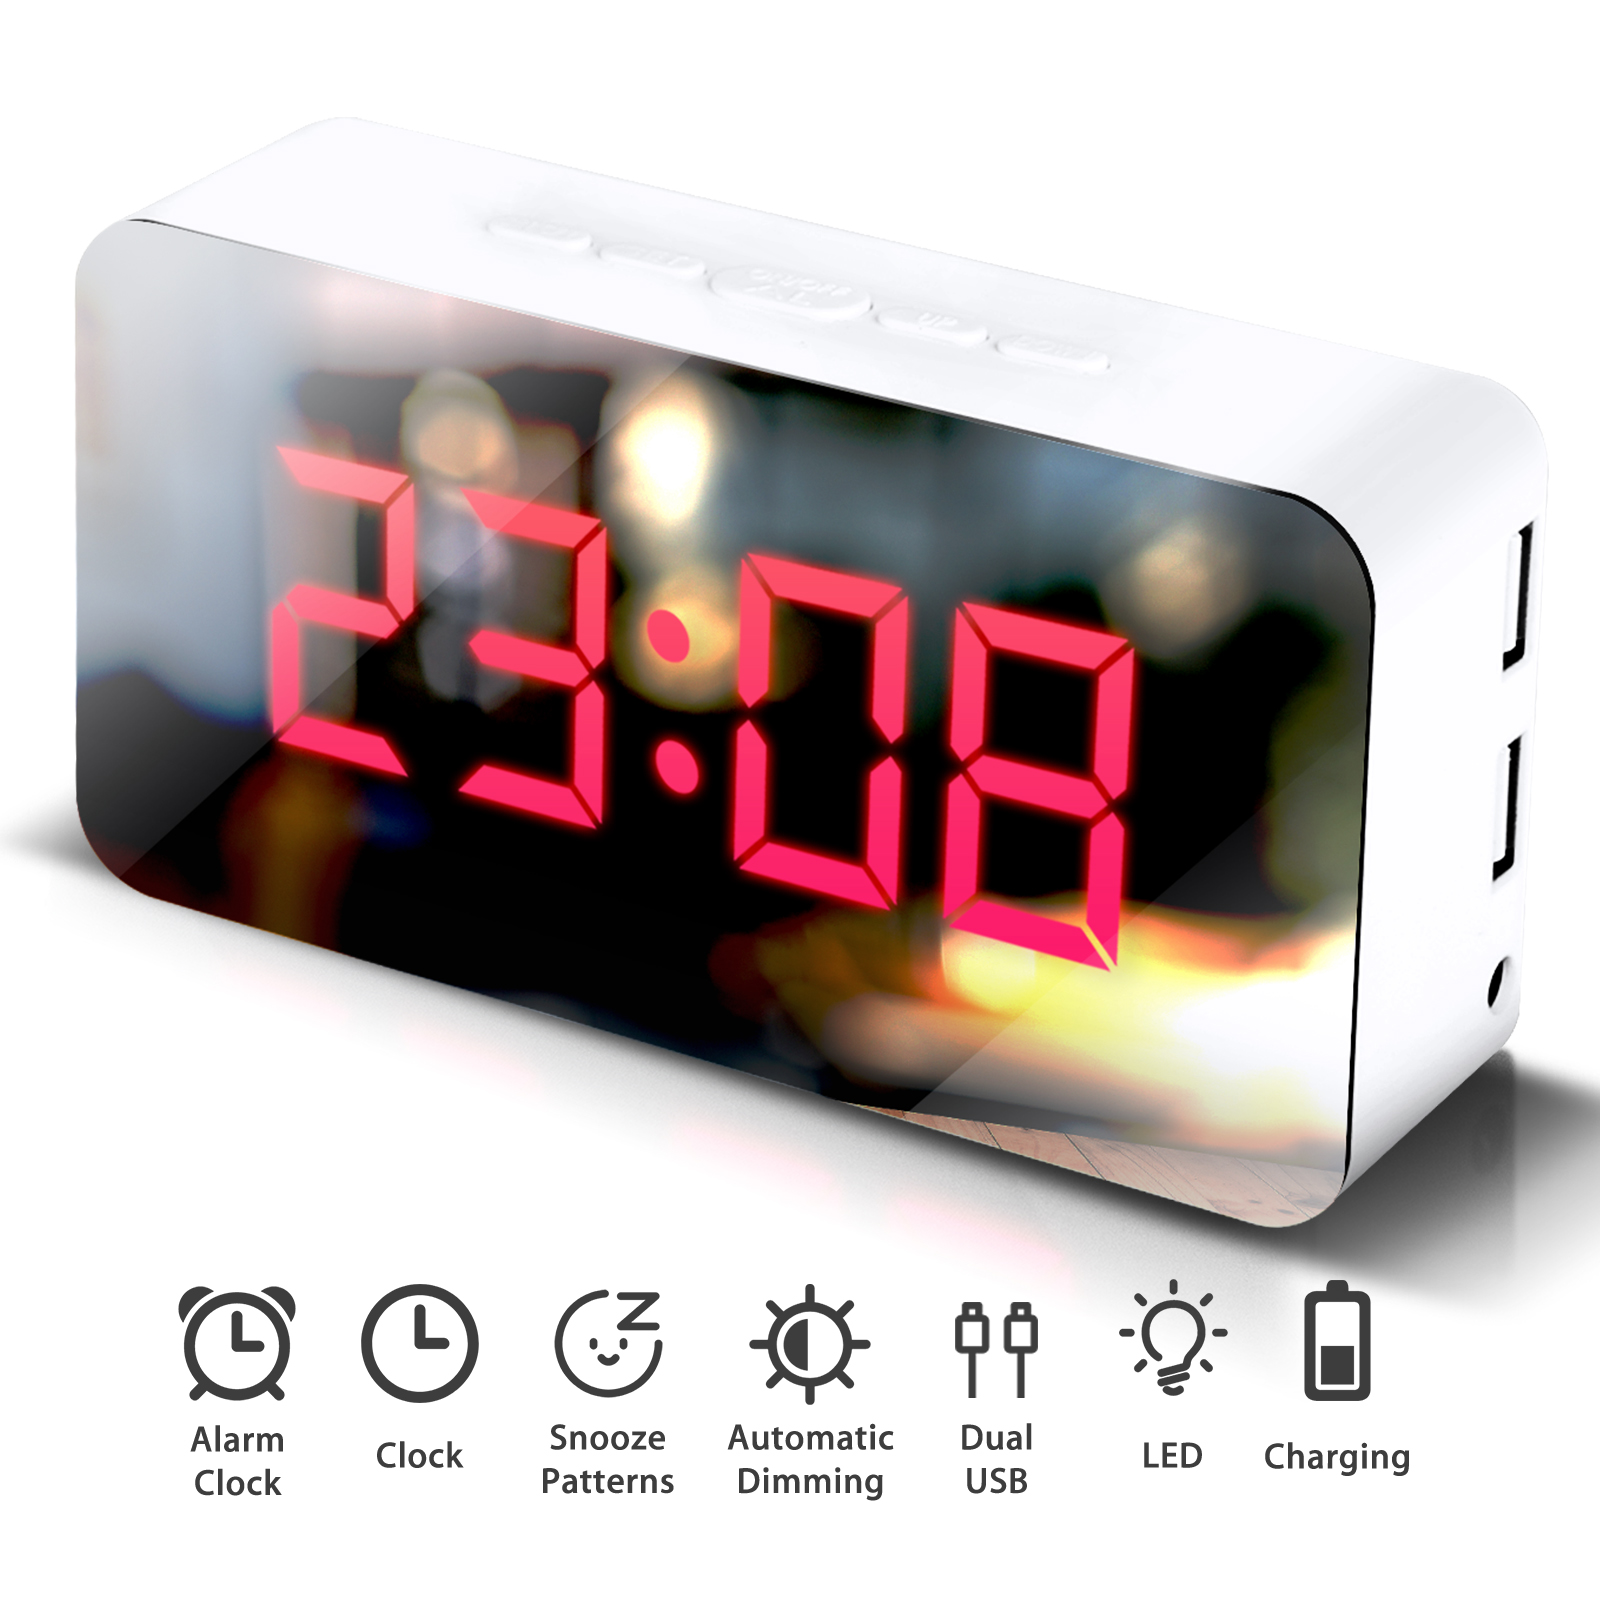 TSV Digital Alarm Clock, LED Display Clock Best Makeup Bedroom Mirror Travel Alarm Office Bedroom Clock, Alarm with Snooze, Auto Dimmer Battery Powered with Dual USB Port